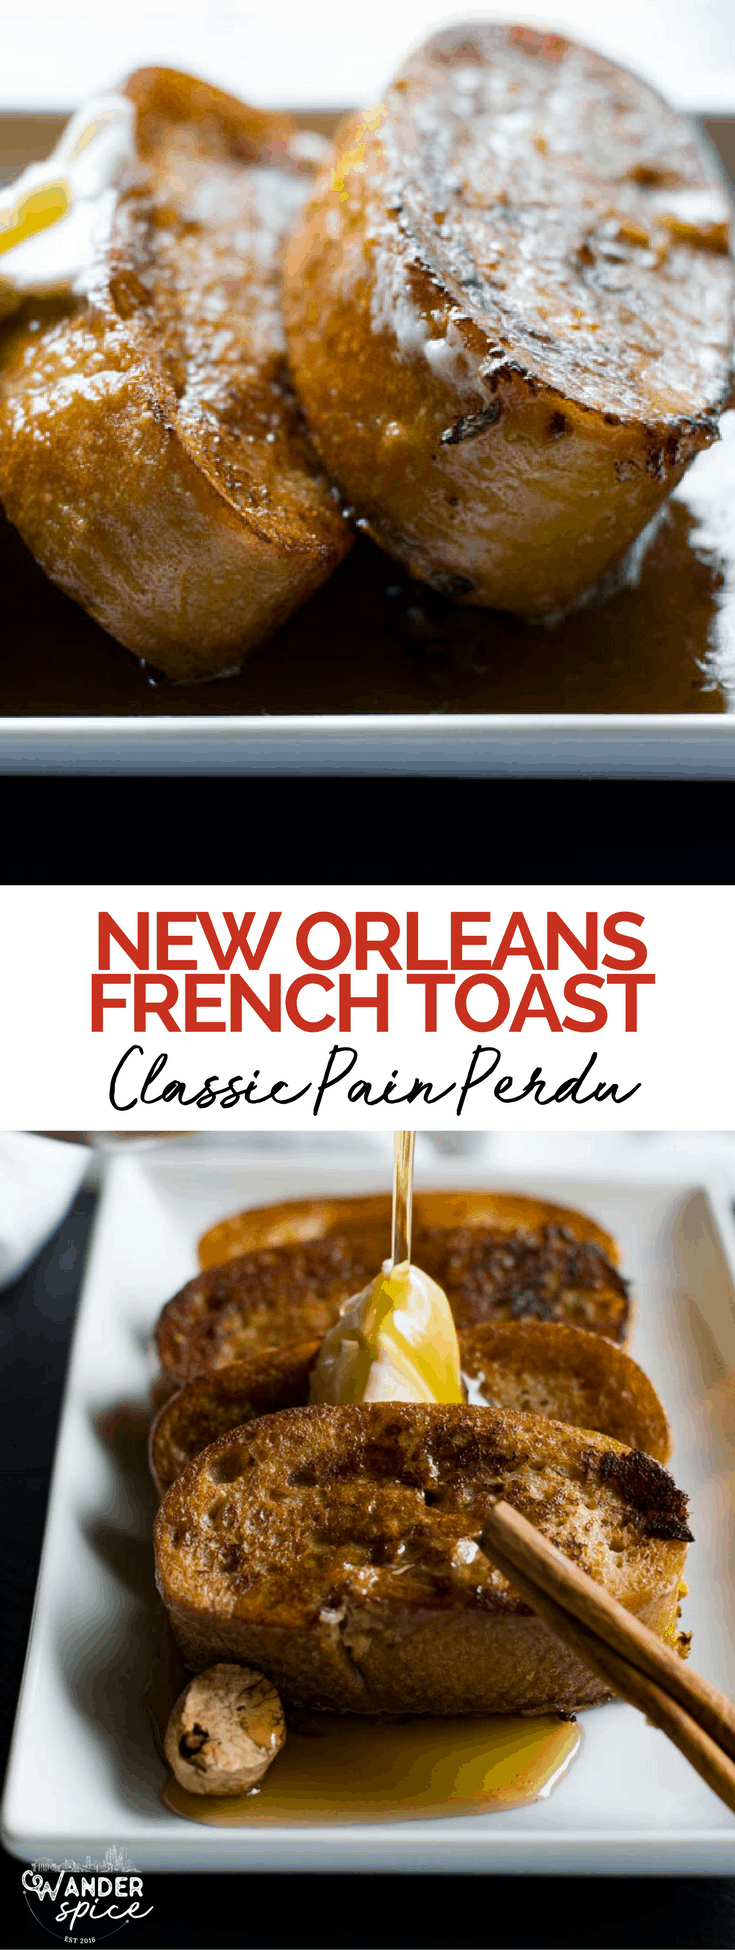 Best French Toast Recipe - Classic French Toast from New Orleans. Pain Perdu #FrenchToast